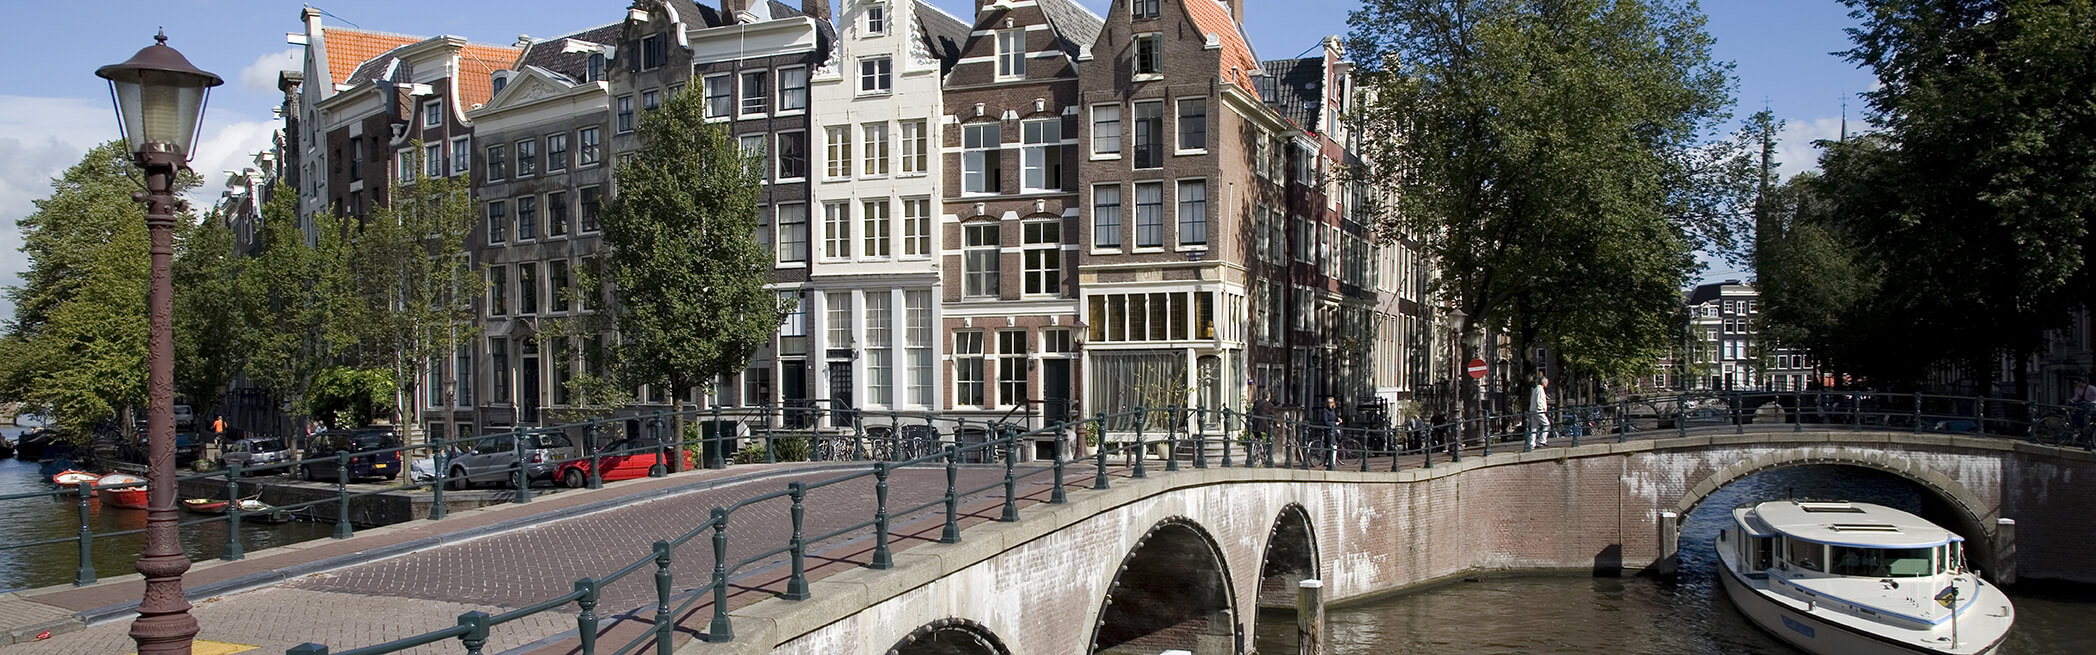 optimized_keizersgracht-amsterdan-3200x1000-72dpi-2.jpg